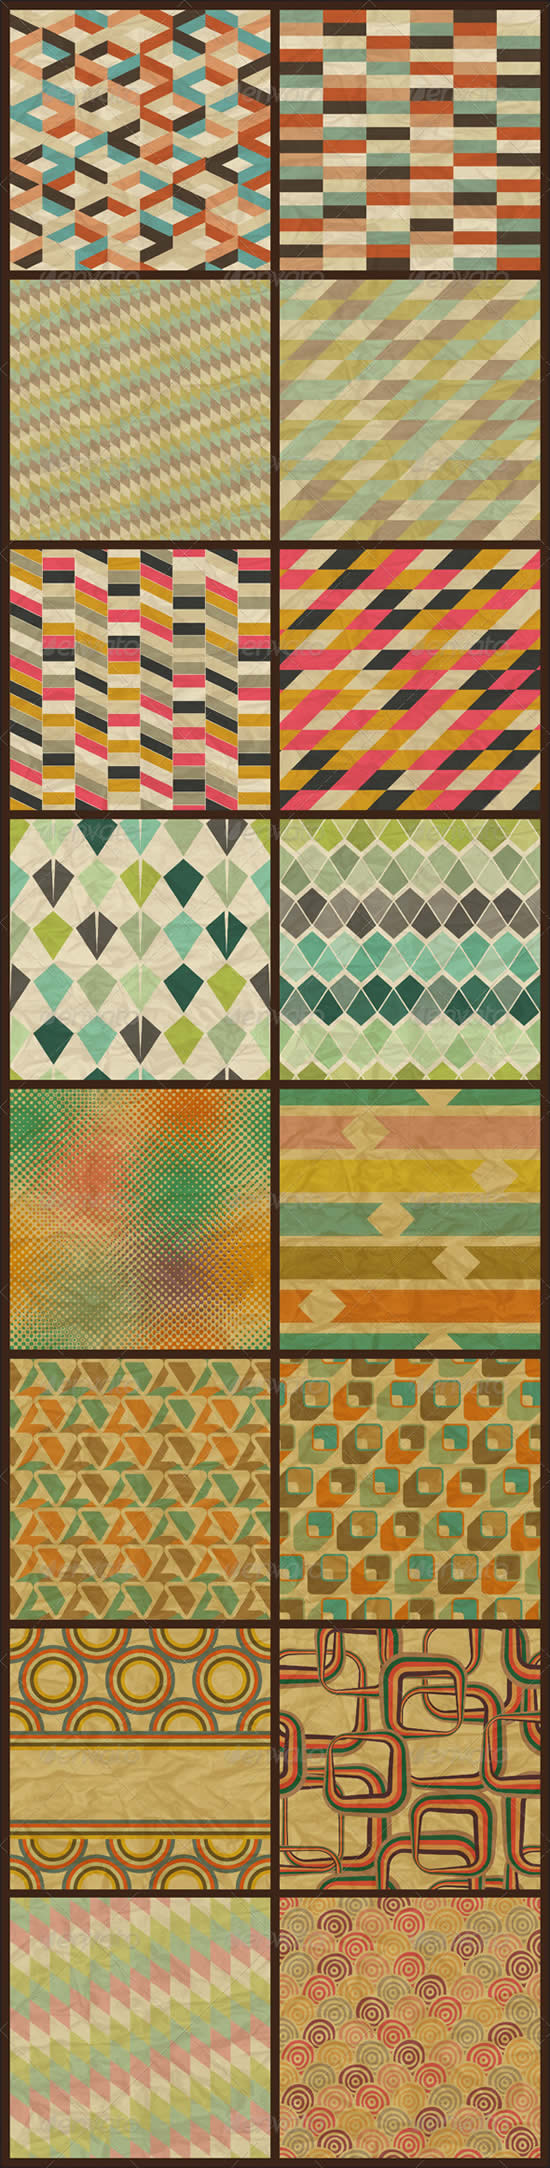 16 Seamless Retro Geometric Patterns